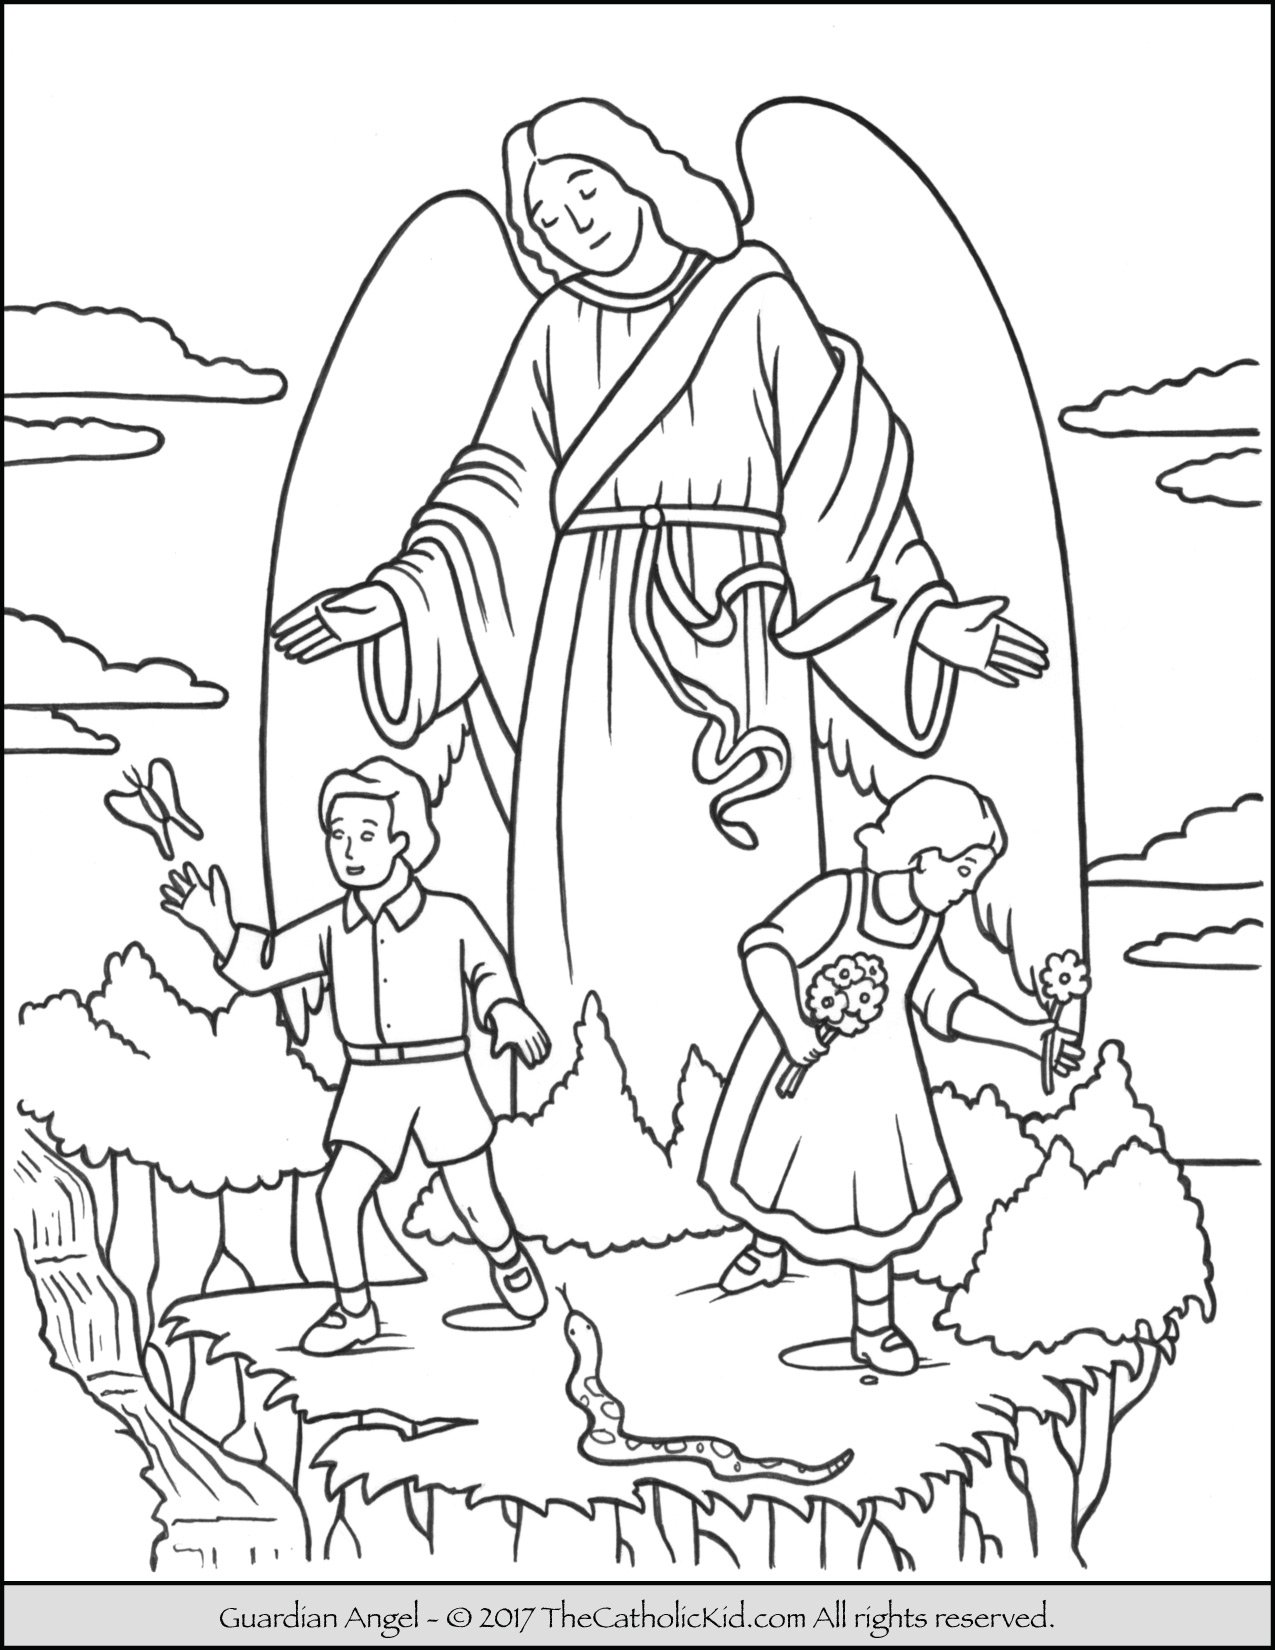 Uncategorized Guardian Angel Coloring Page guardian angel coloring page page